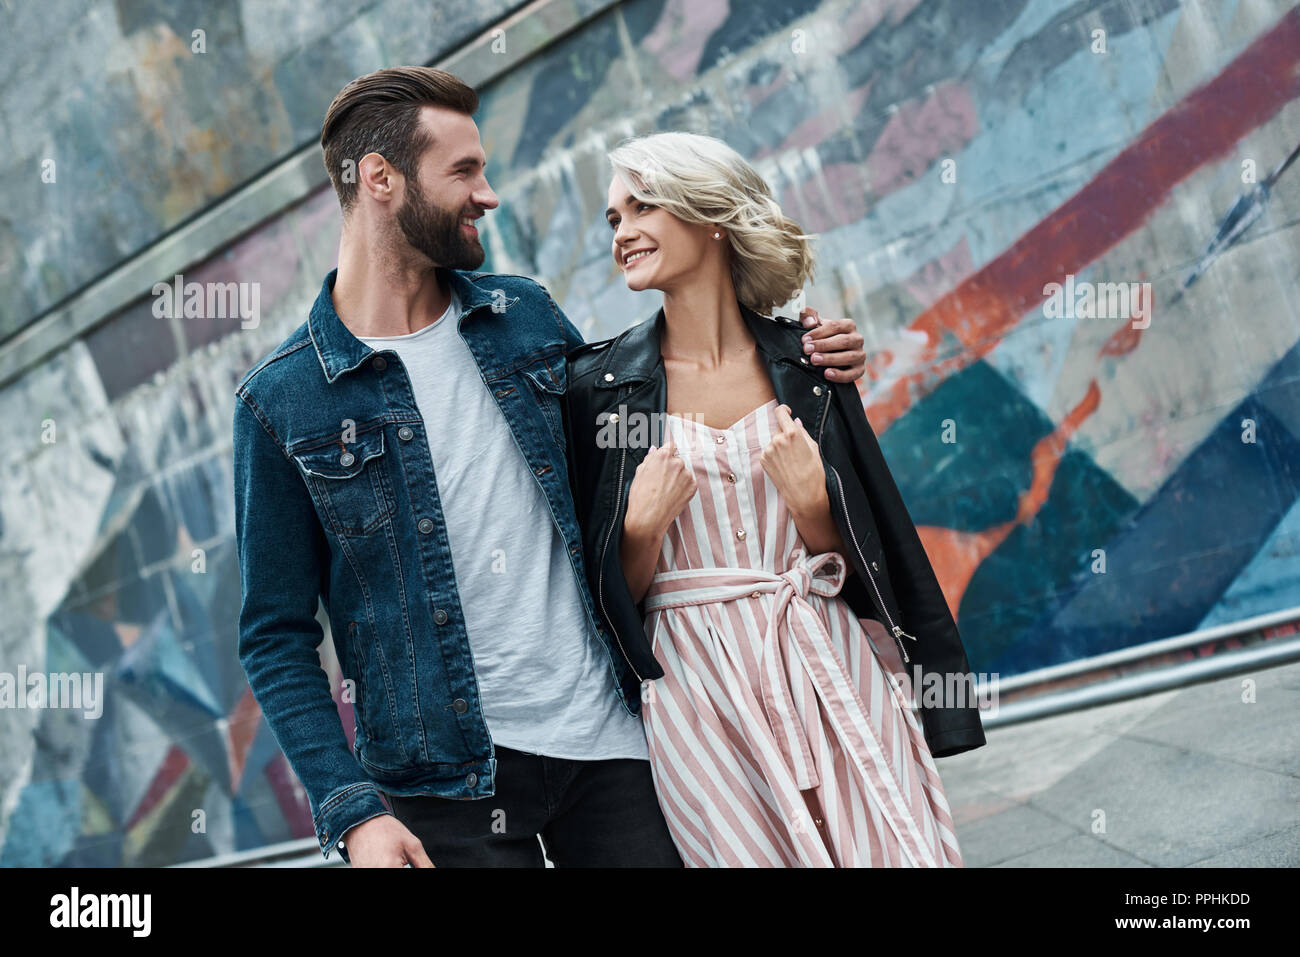 Romantic date outdoors. Young couple walking on the city street hugging looking at each other smiling cheerful - Stock Image